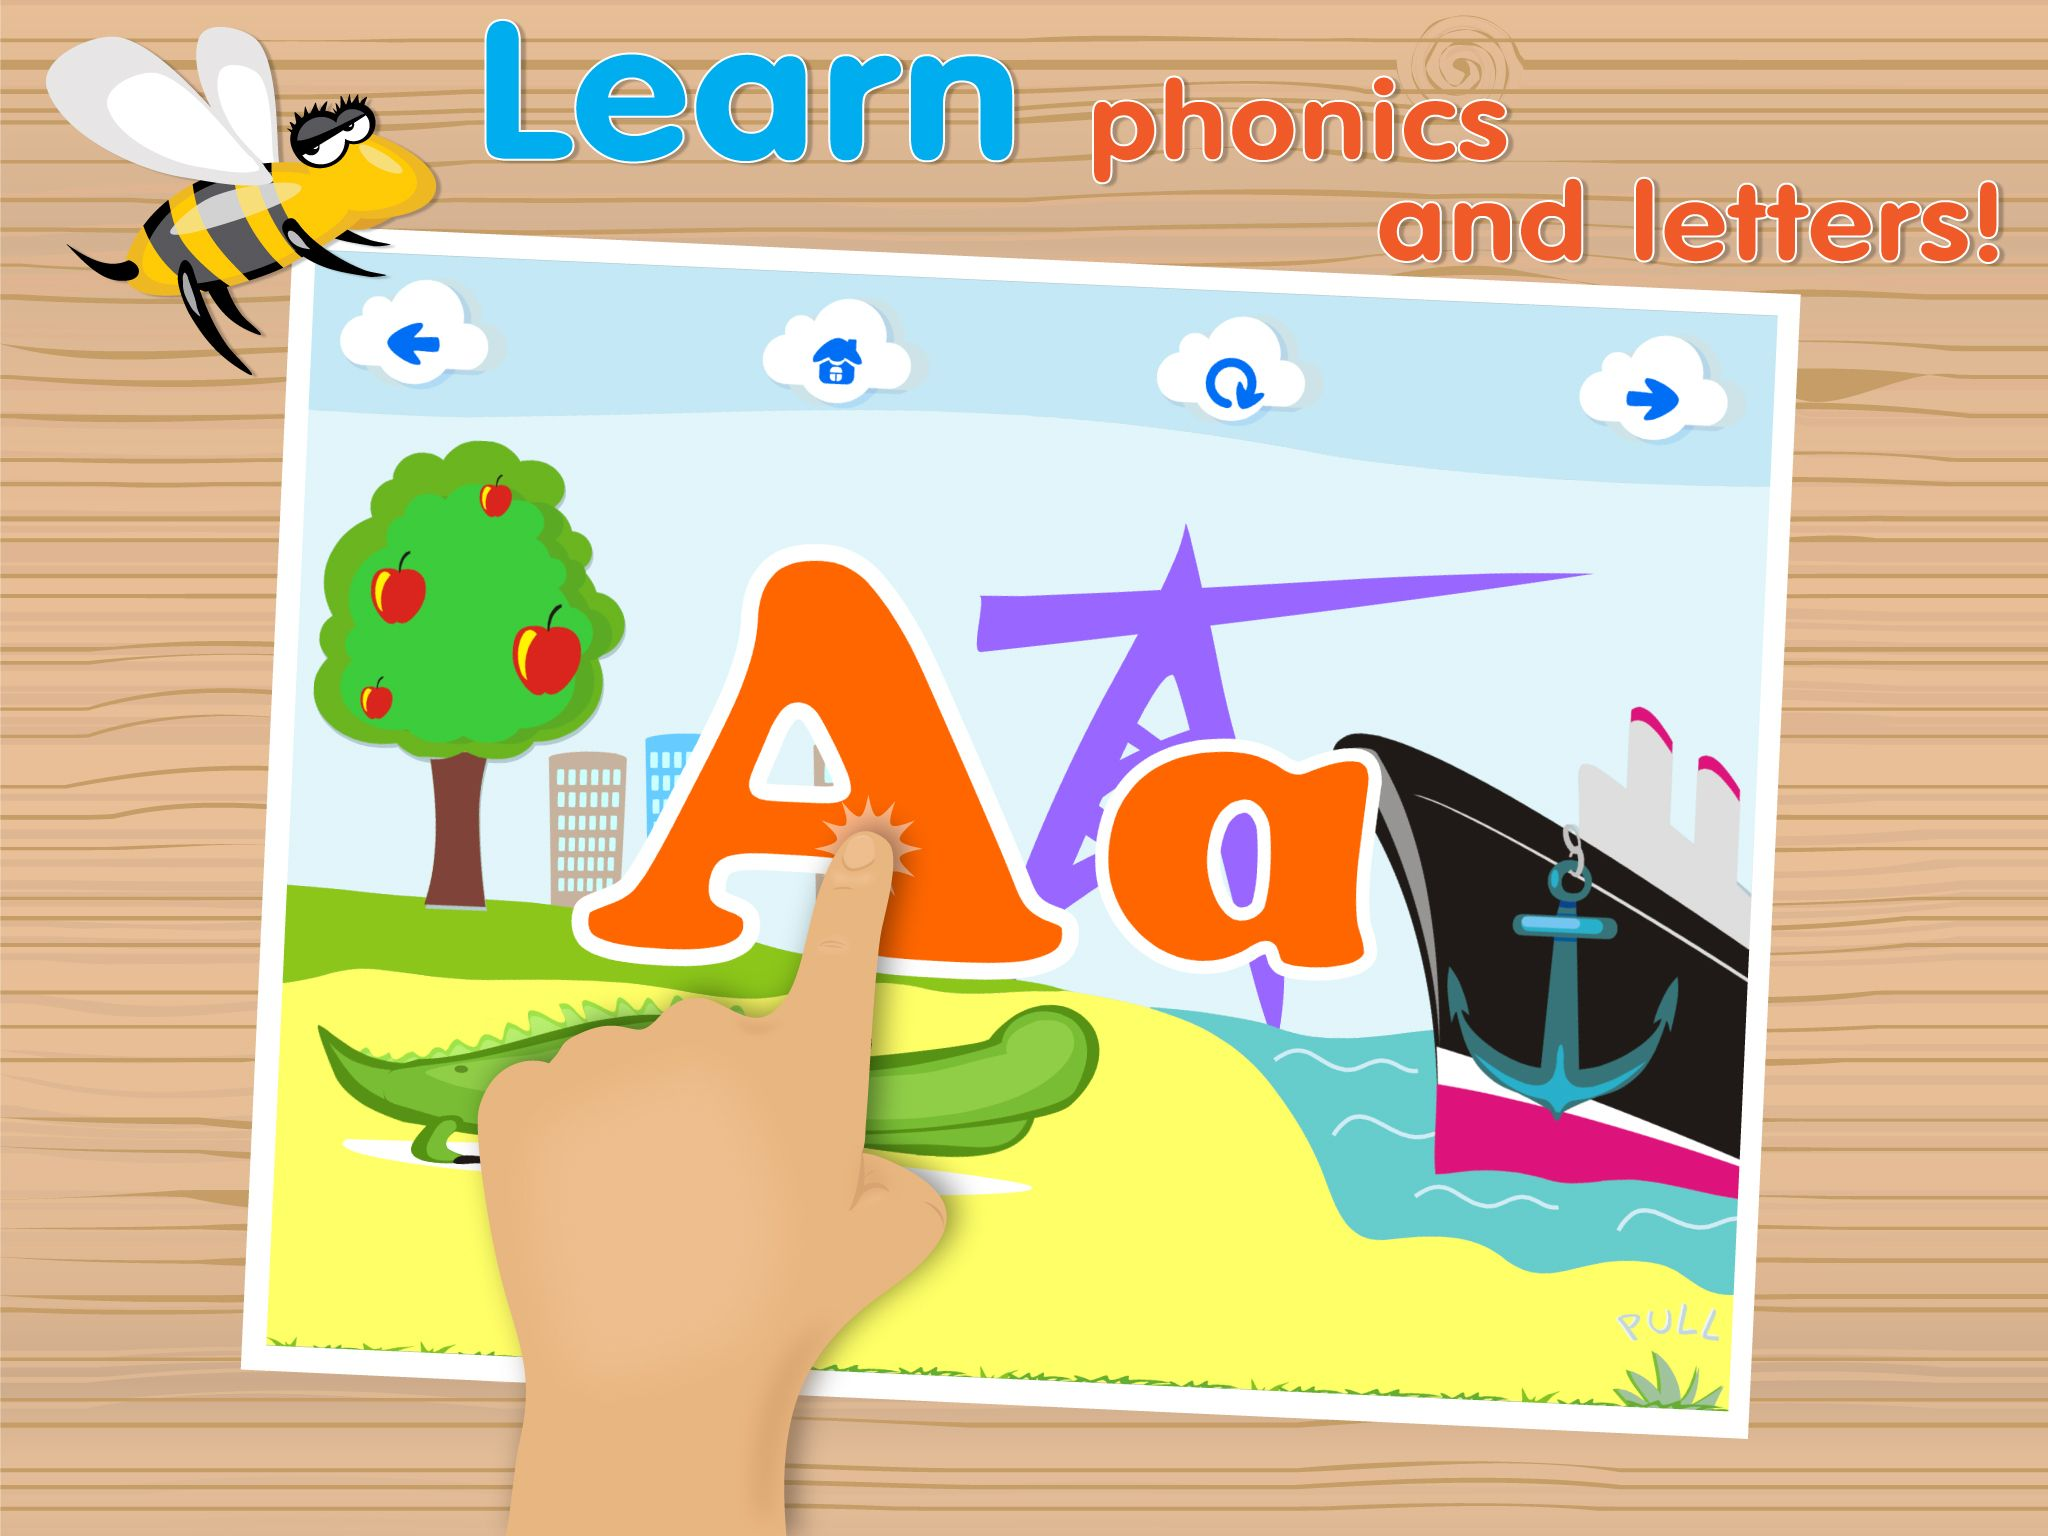 new screenshots for our ABC teaching app Educational